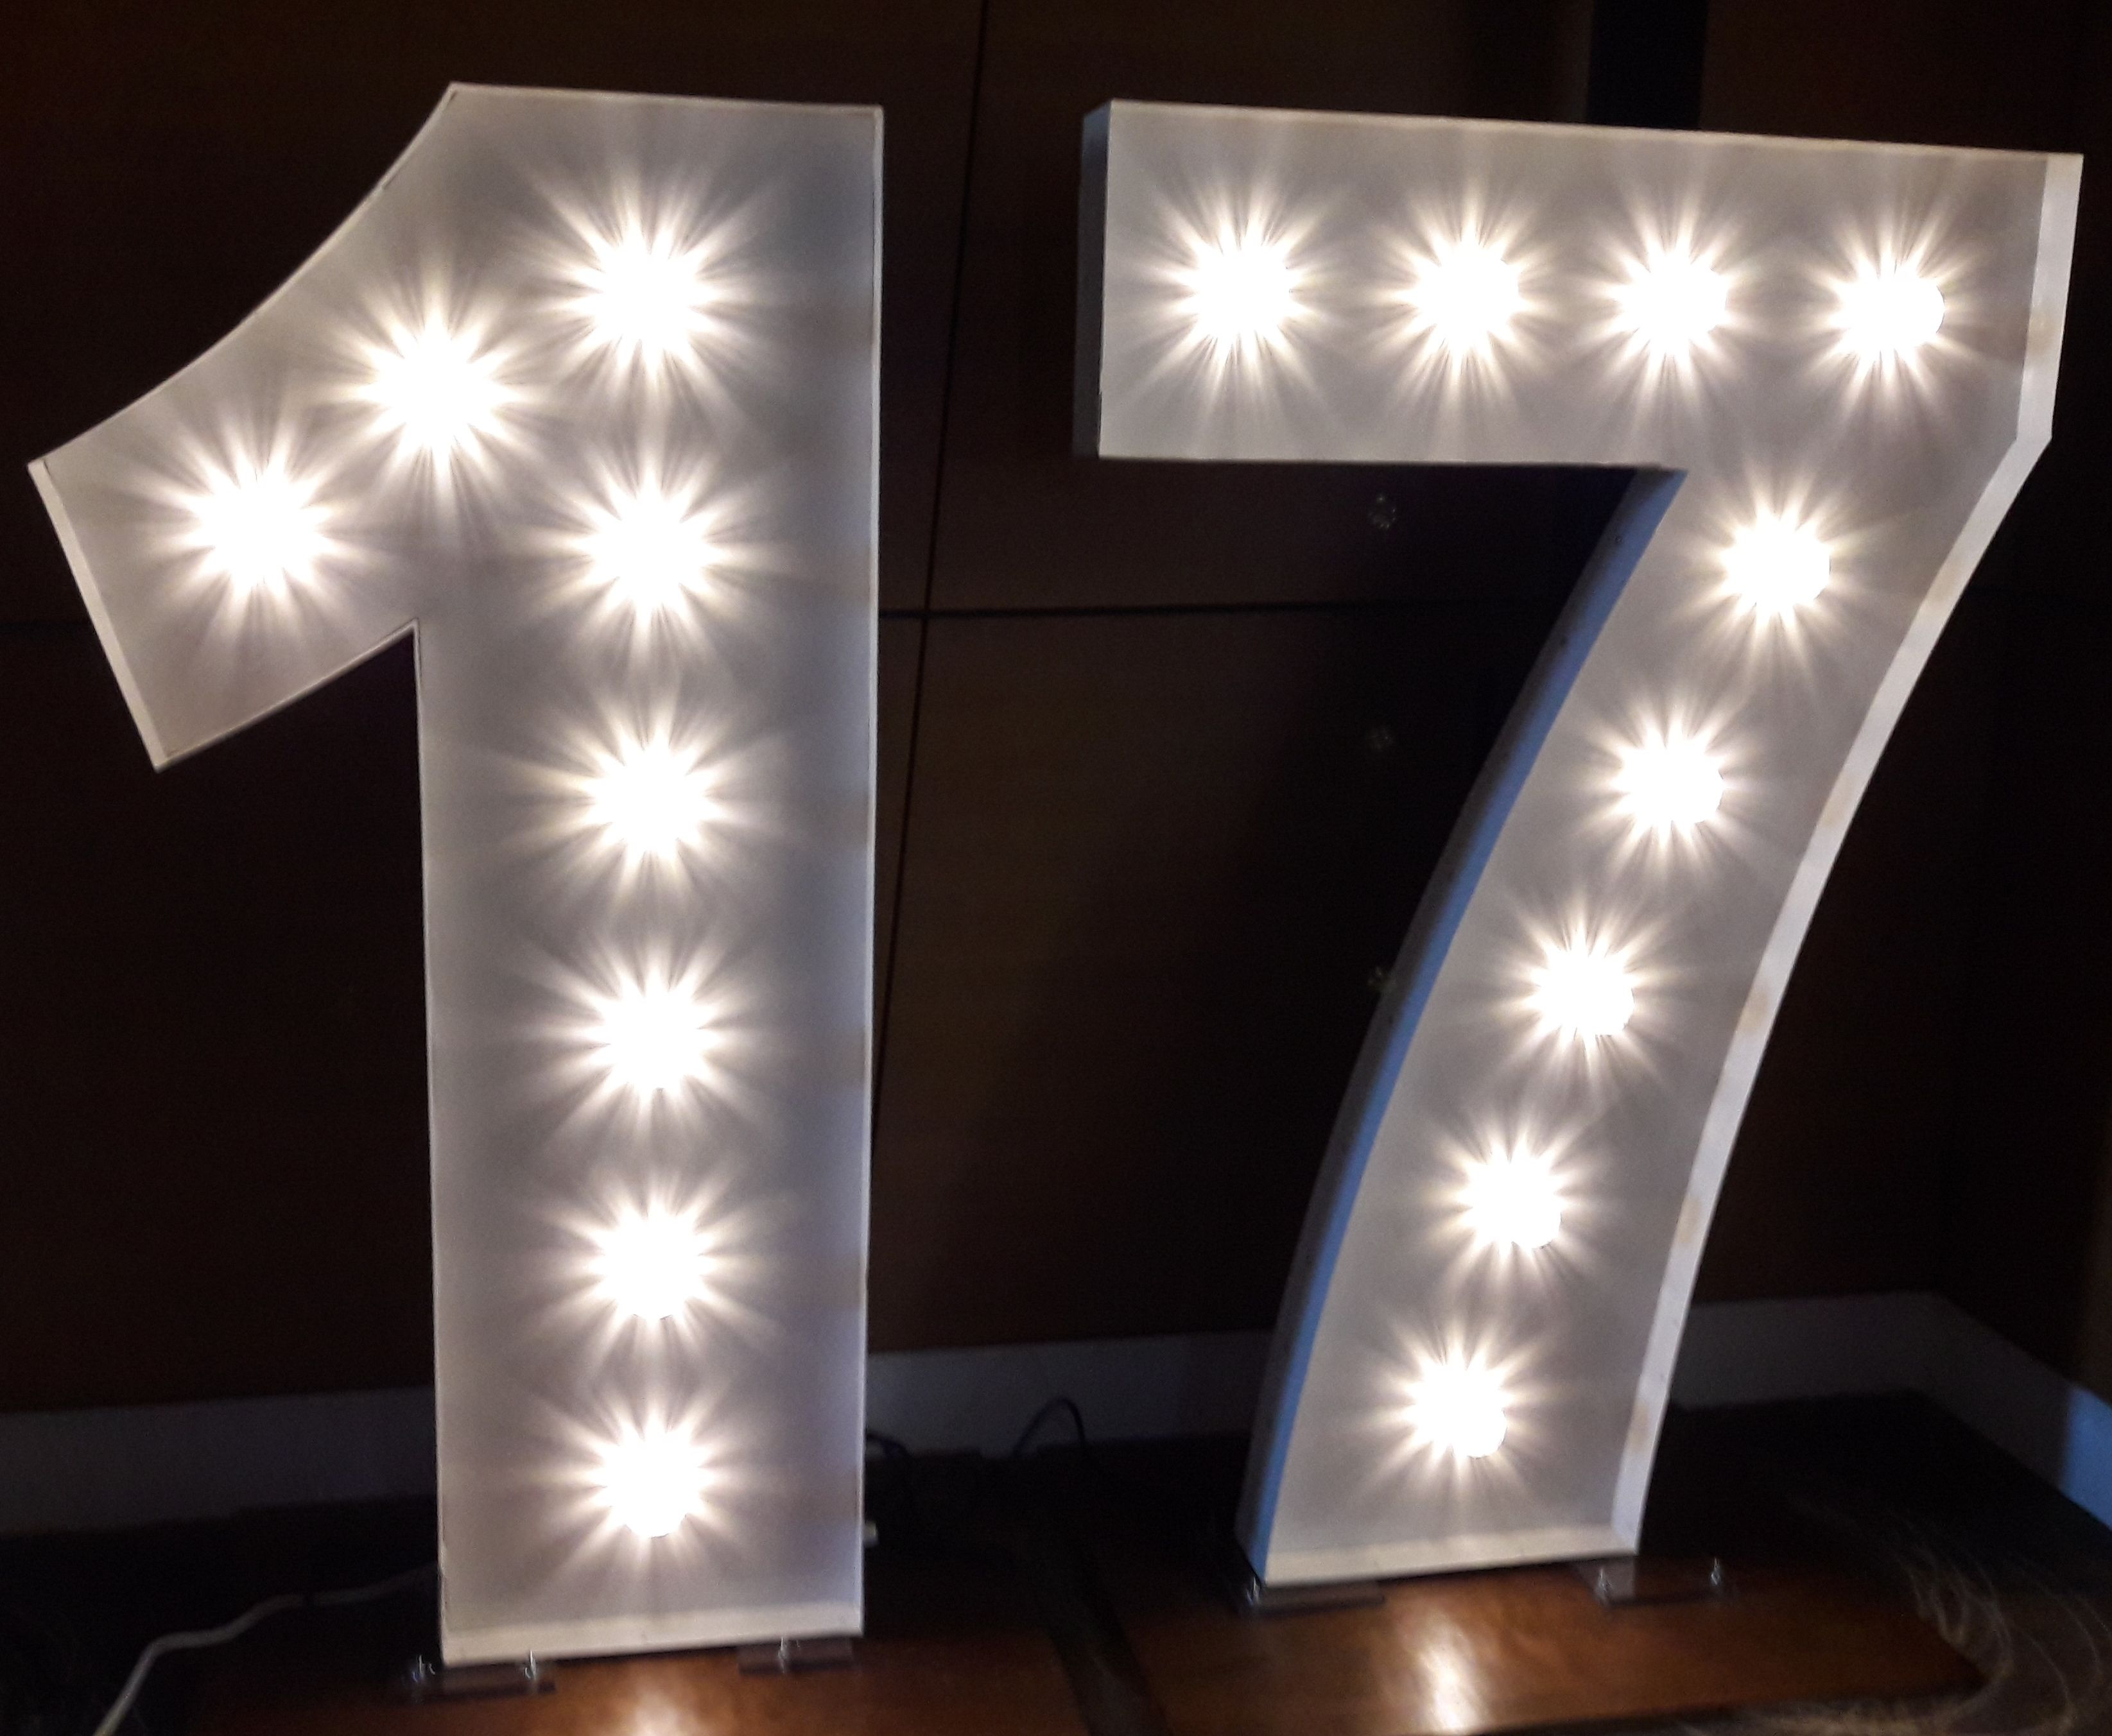 17 Giant Illuminated Number Lights Light Up Letters Mirror Photo Booth Lights